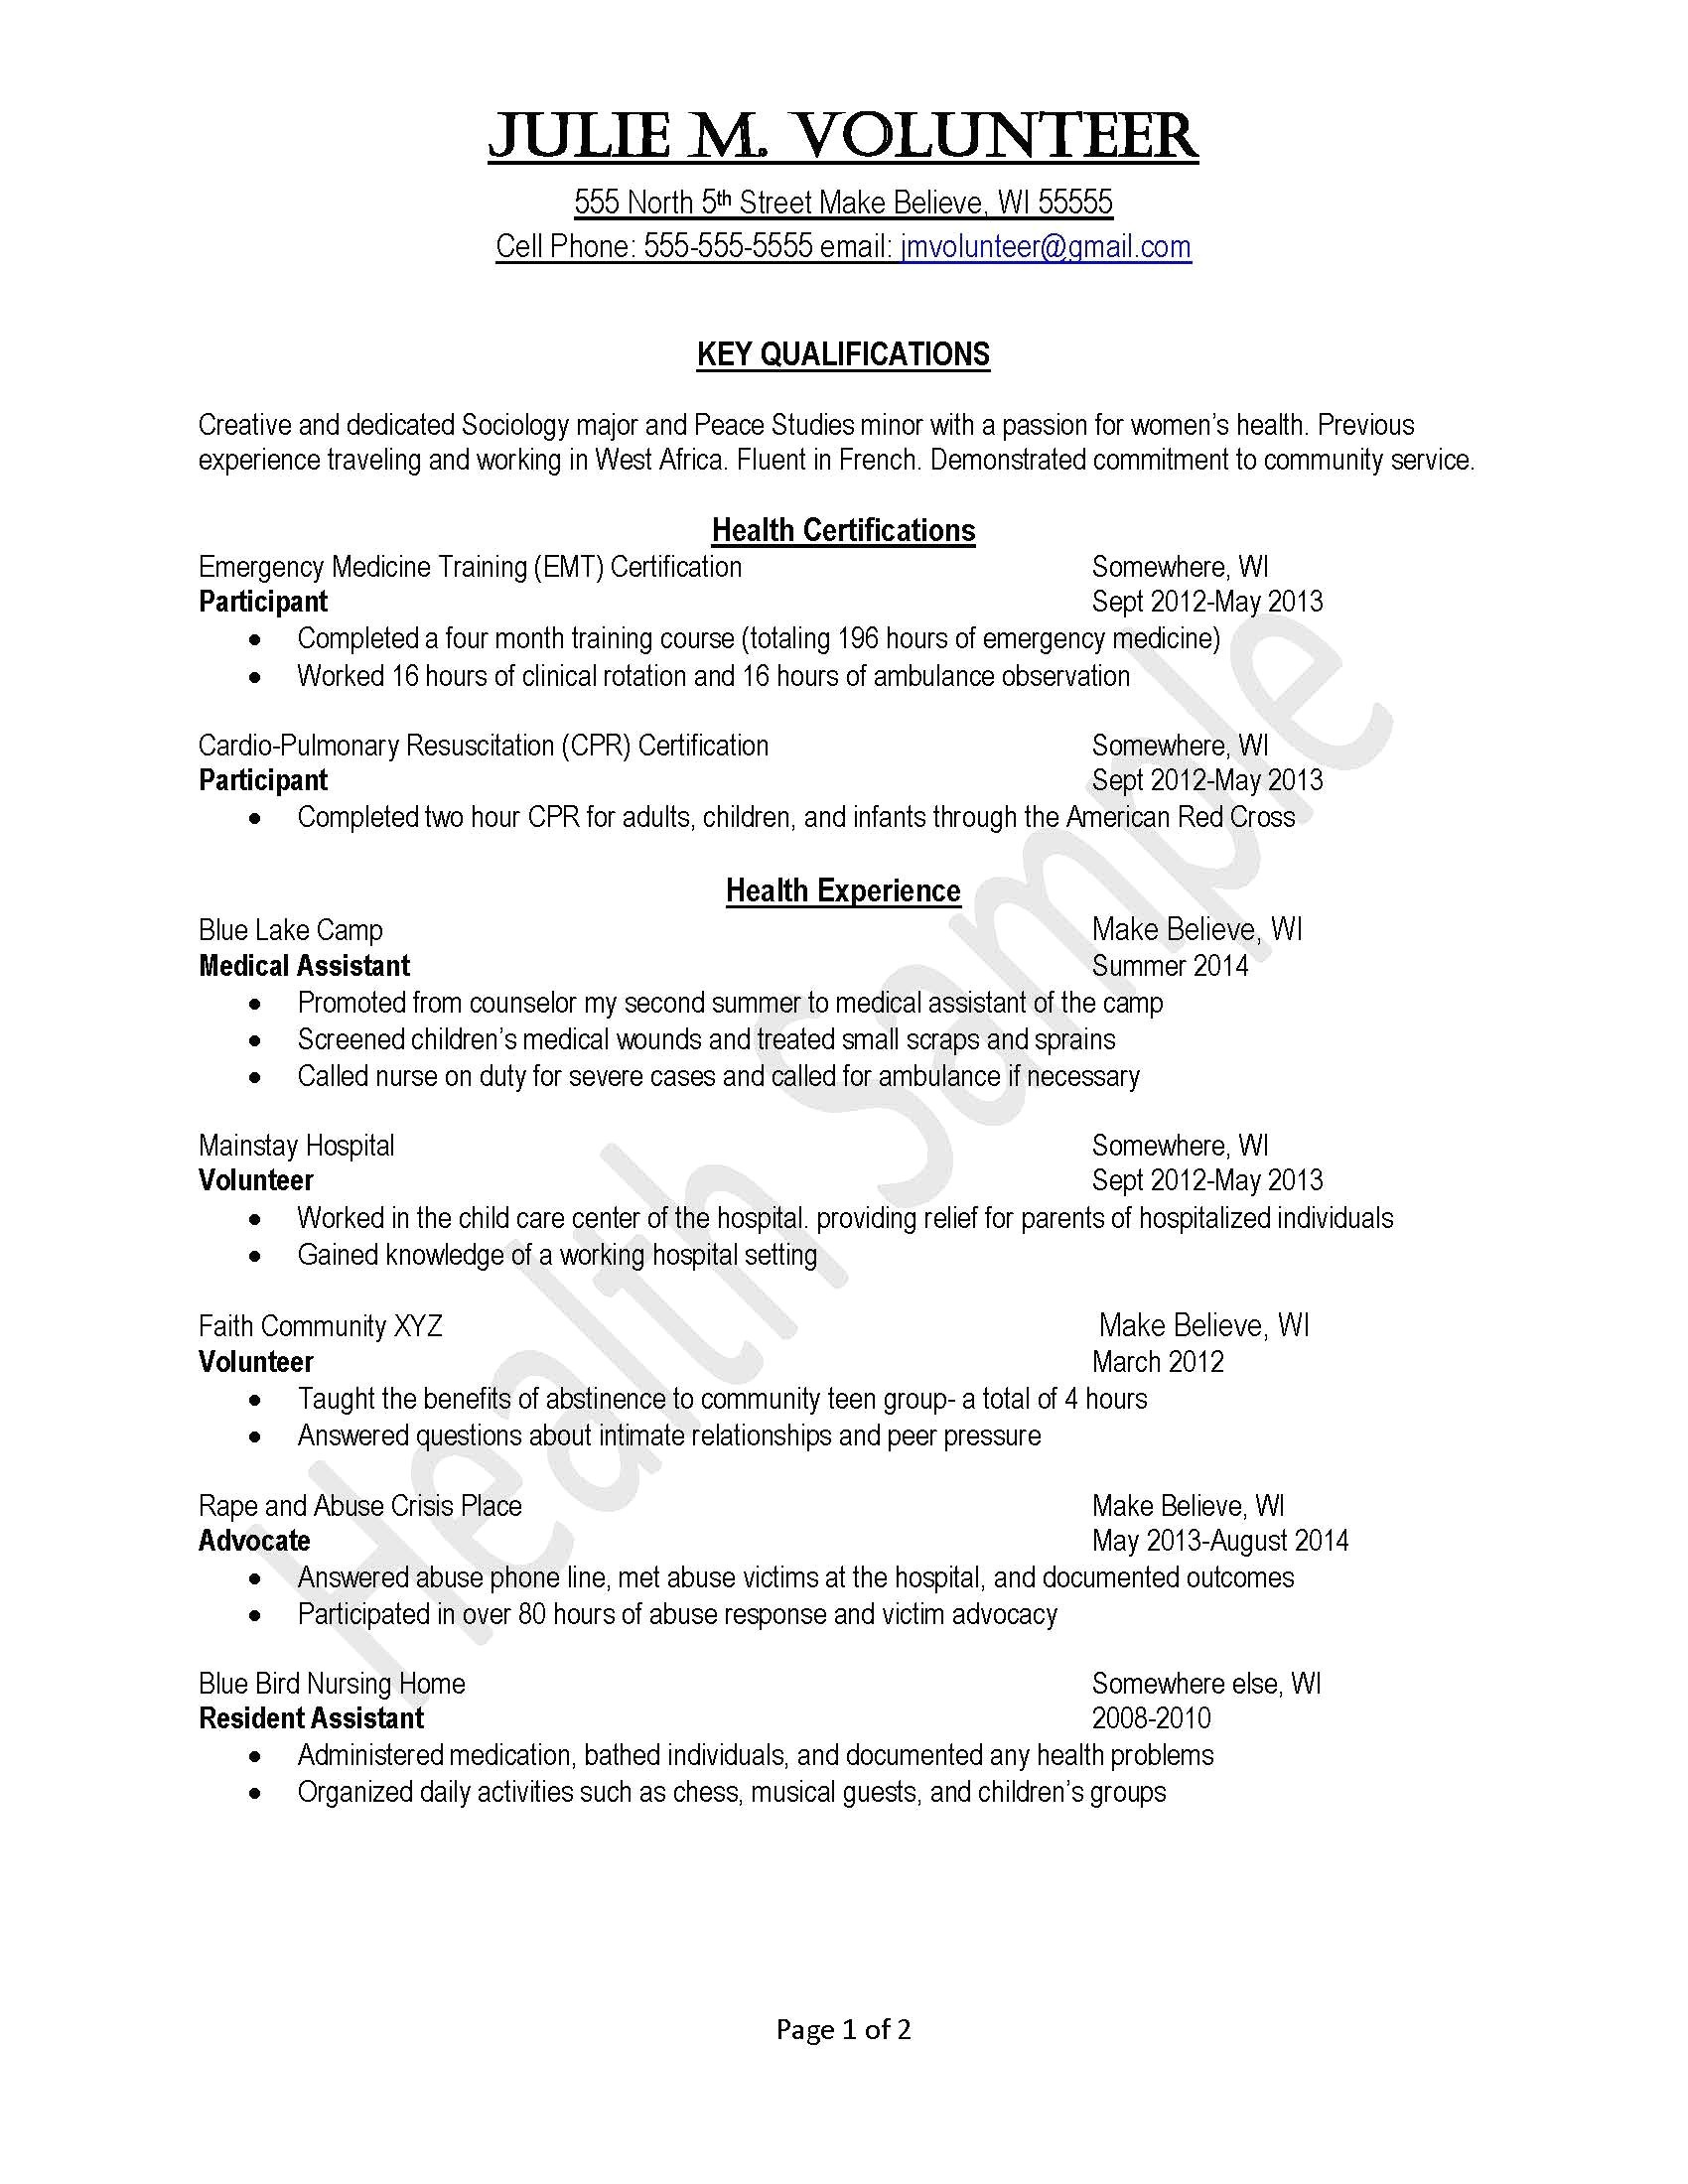 Resume Templates for sociology Majors Trending Images Of Modeling Resume No Experience